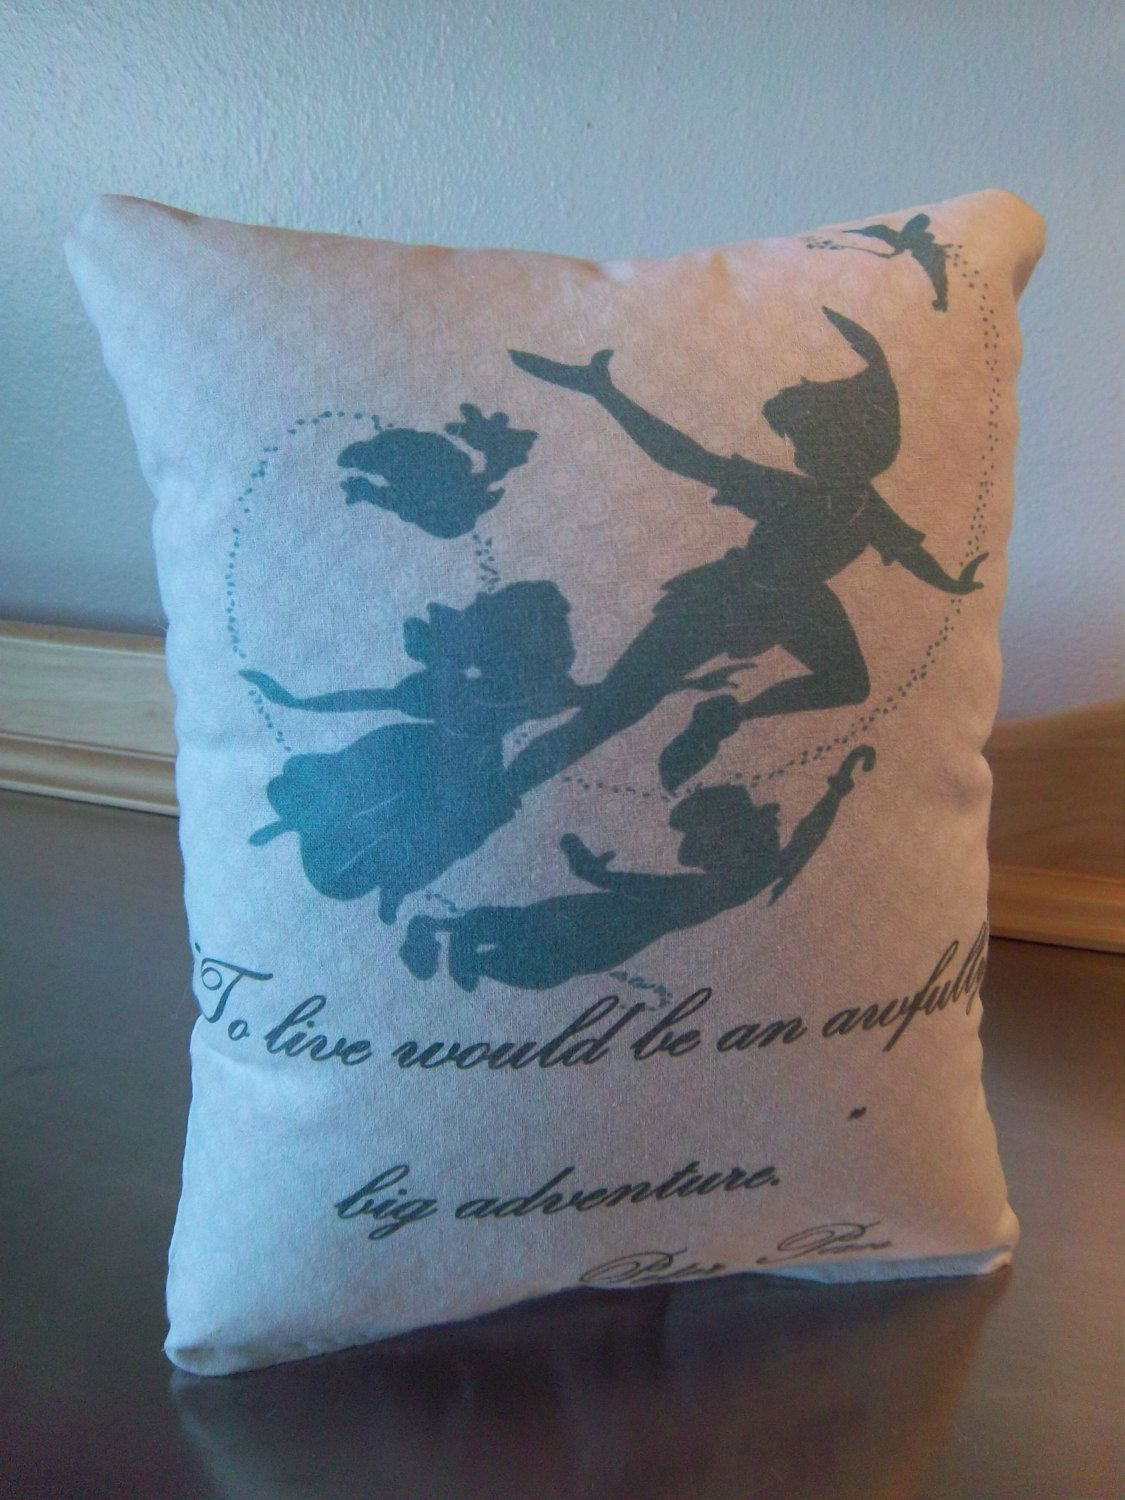 Peter pan nursery pillow handmade baby shower gift quote j m barrie